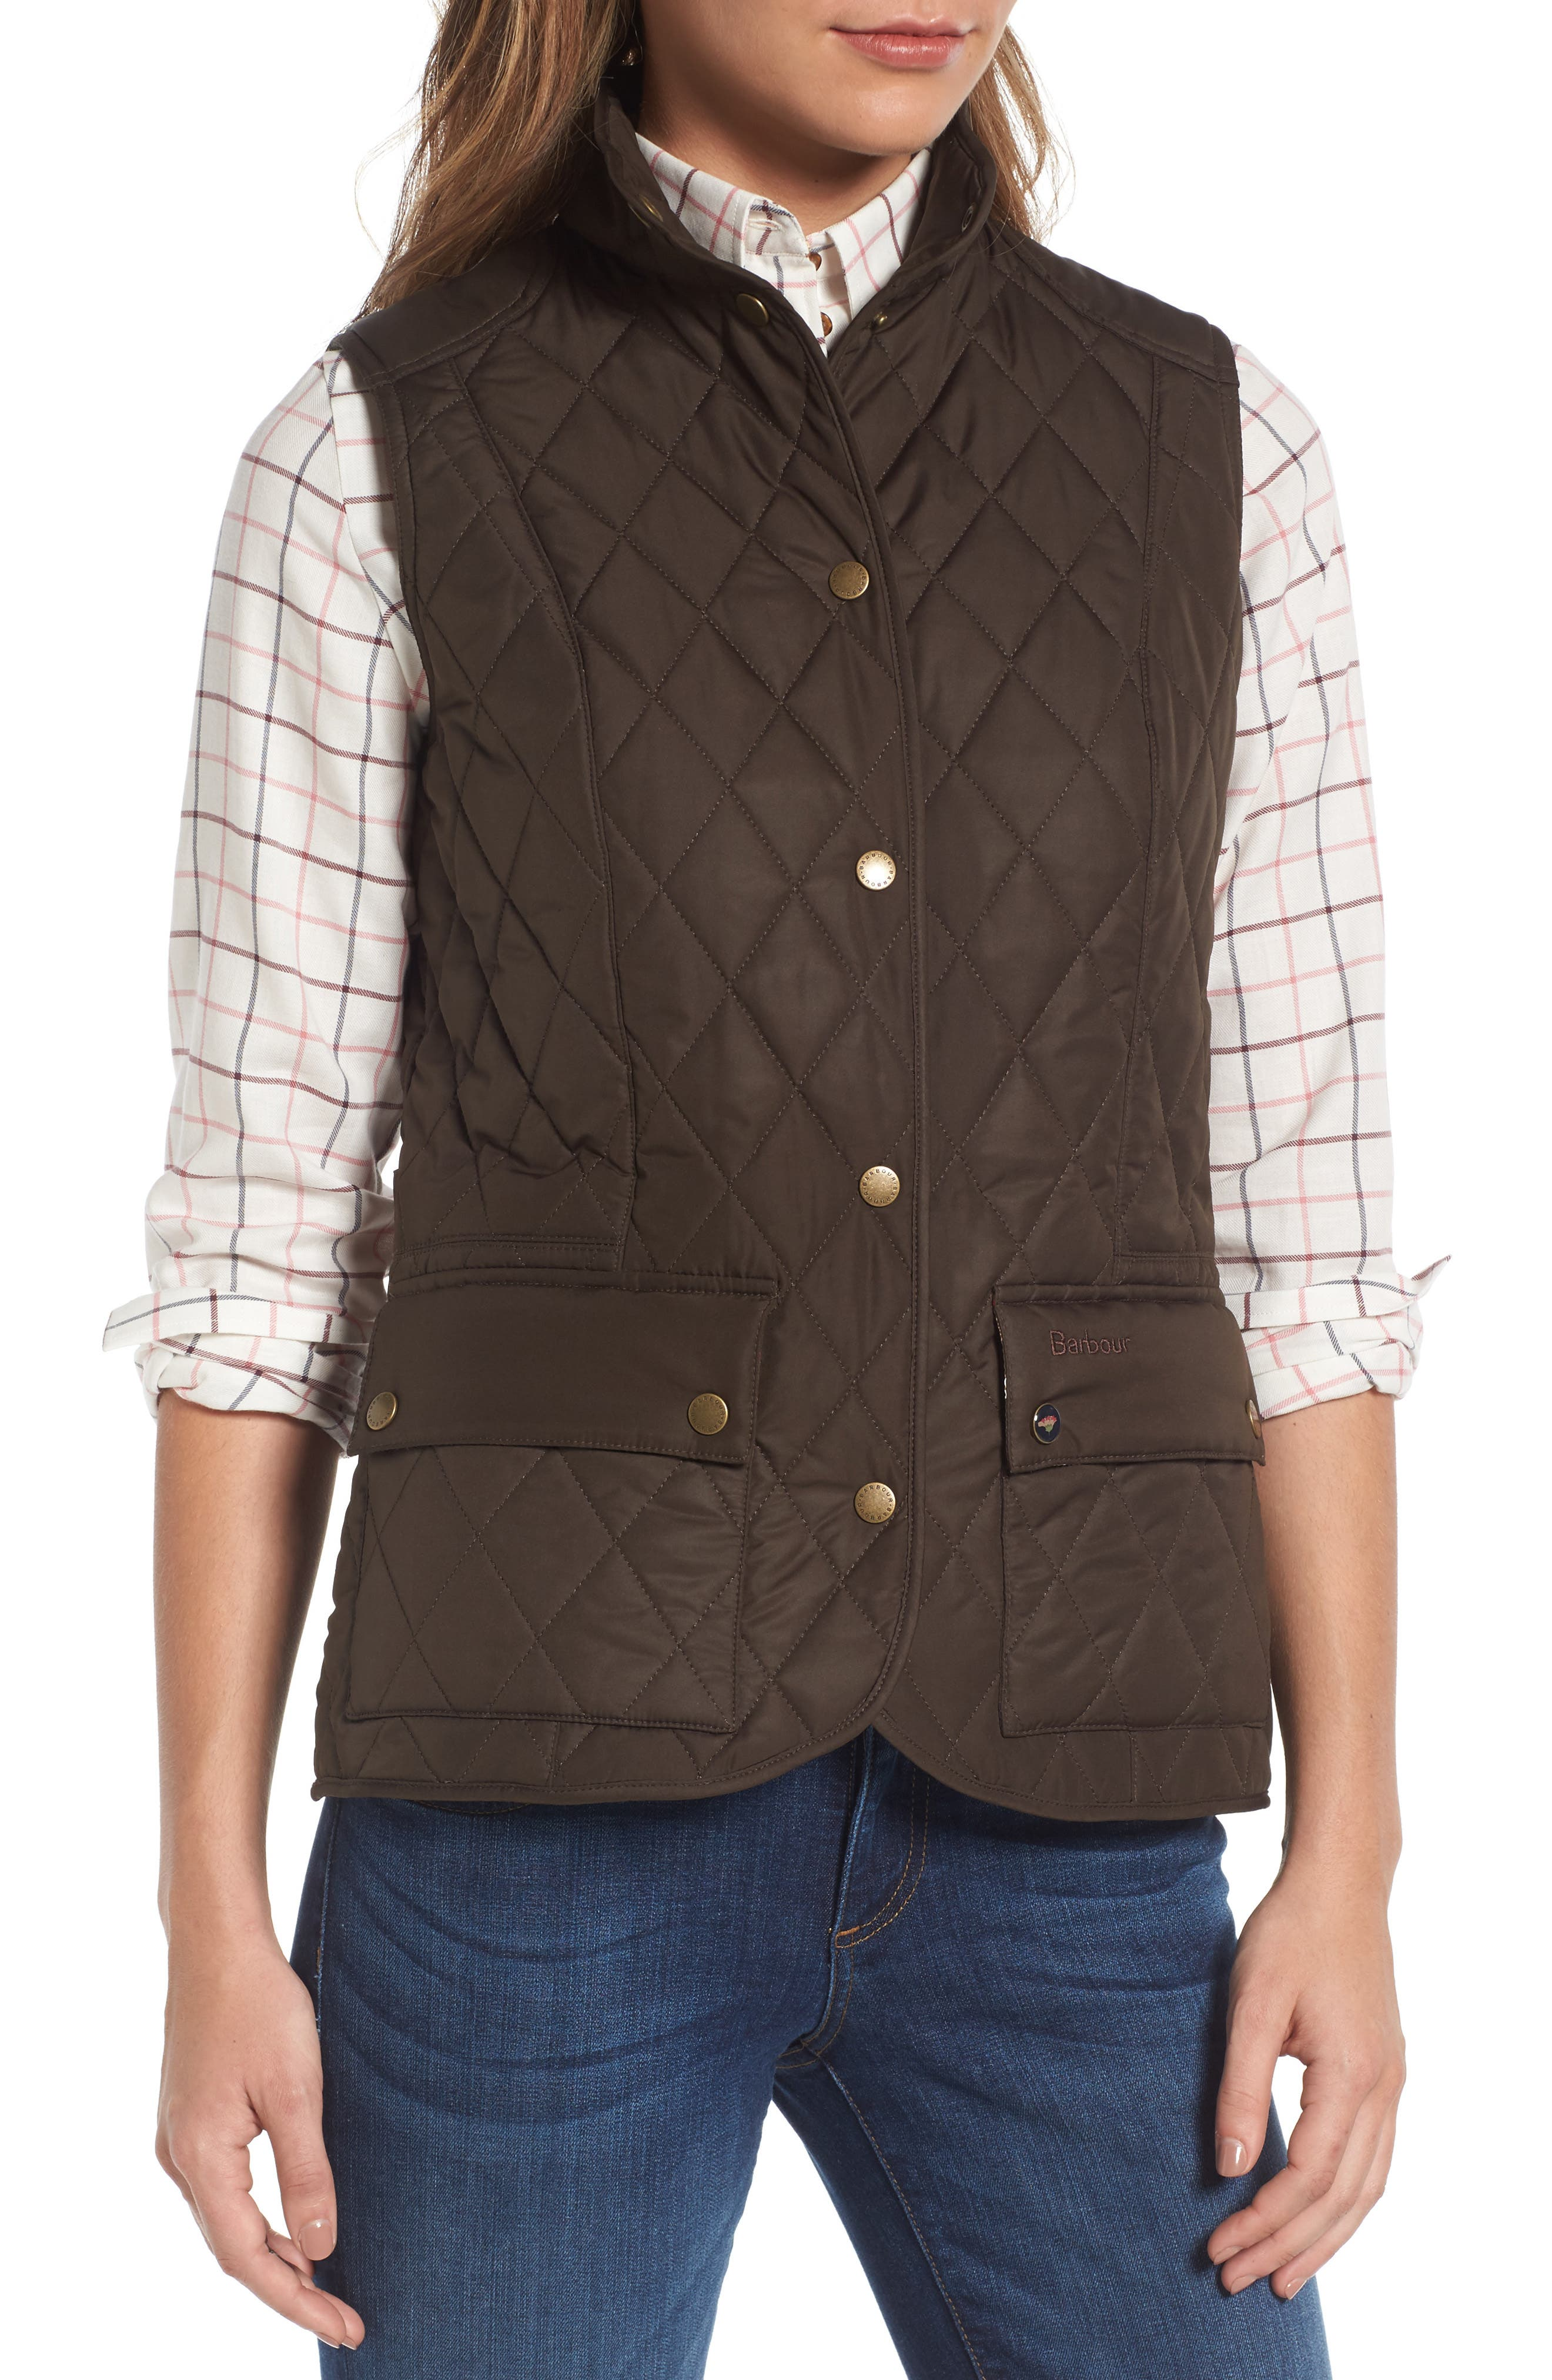 Saddleworth Quilted Vest,                             Alternate thumbnail 4, color,                             340